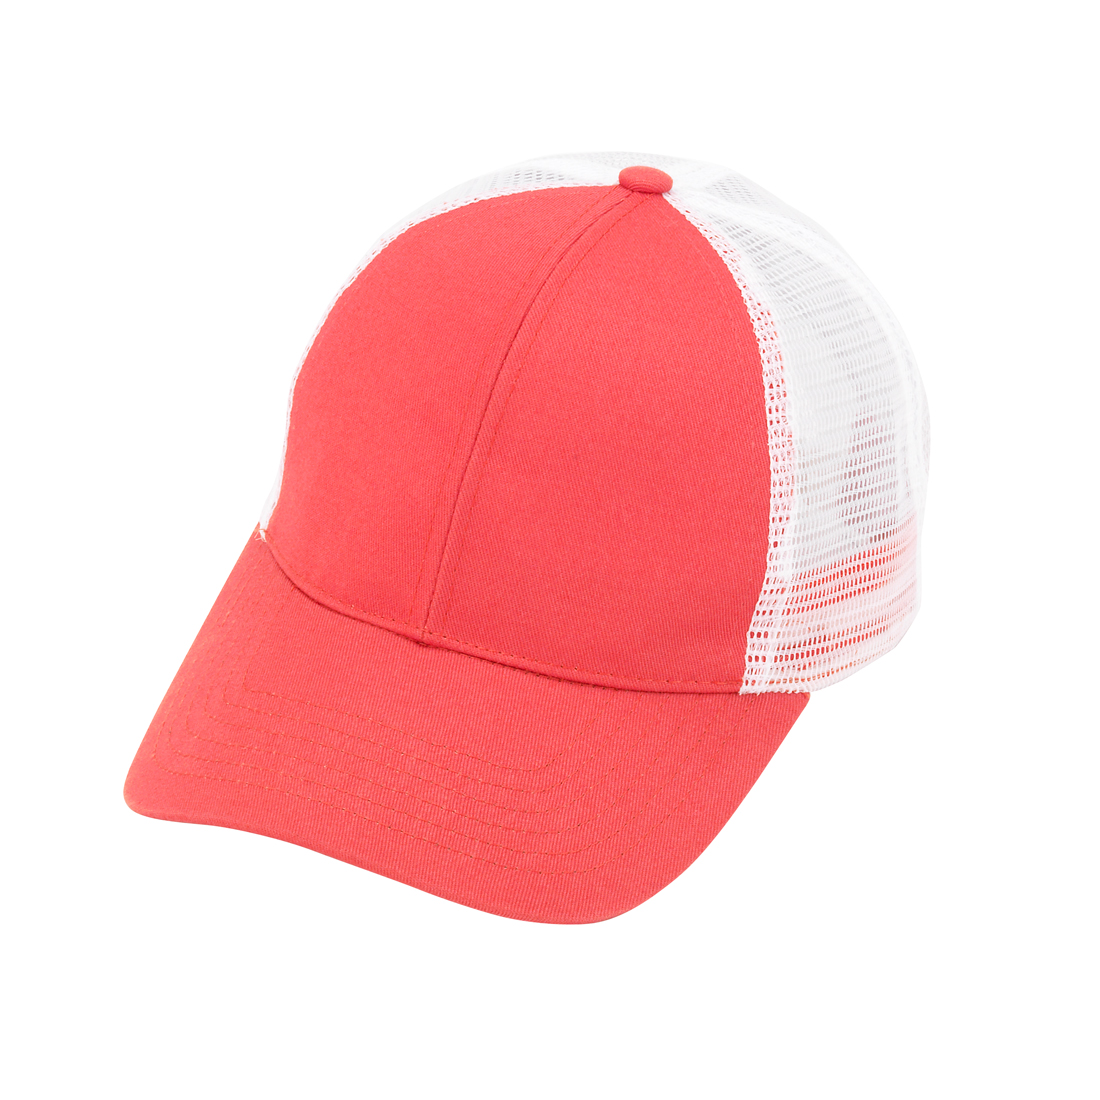 dca4cc70a13 Monogram Baseball Hat for Ladies